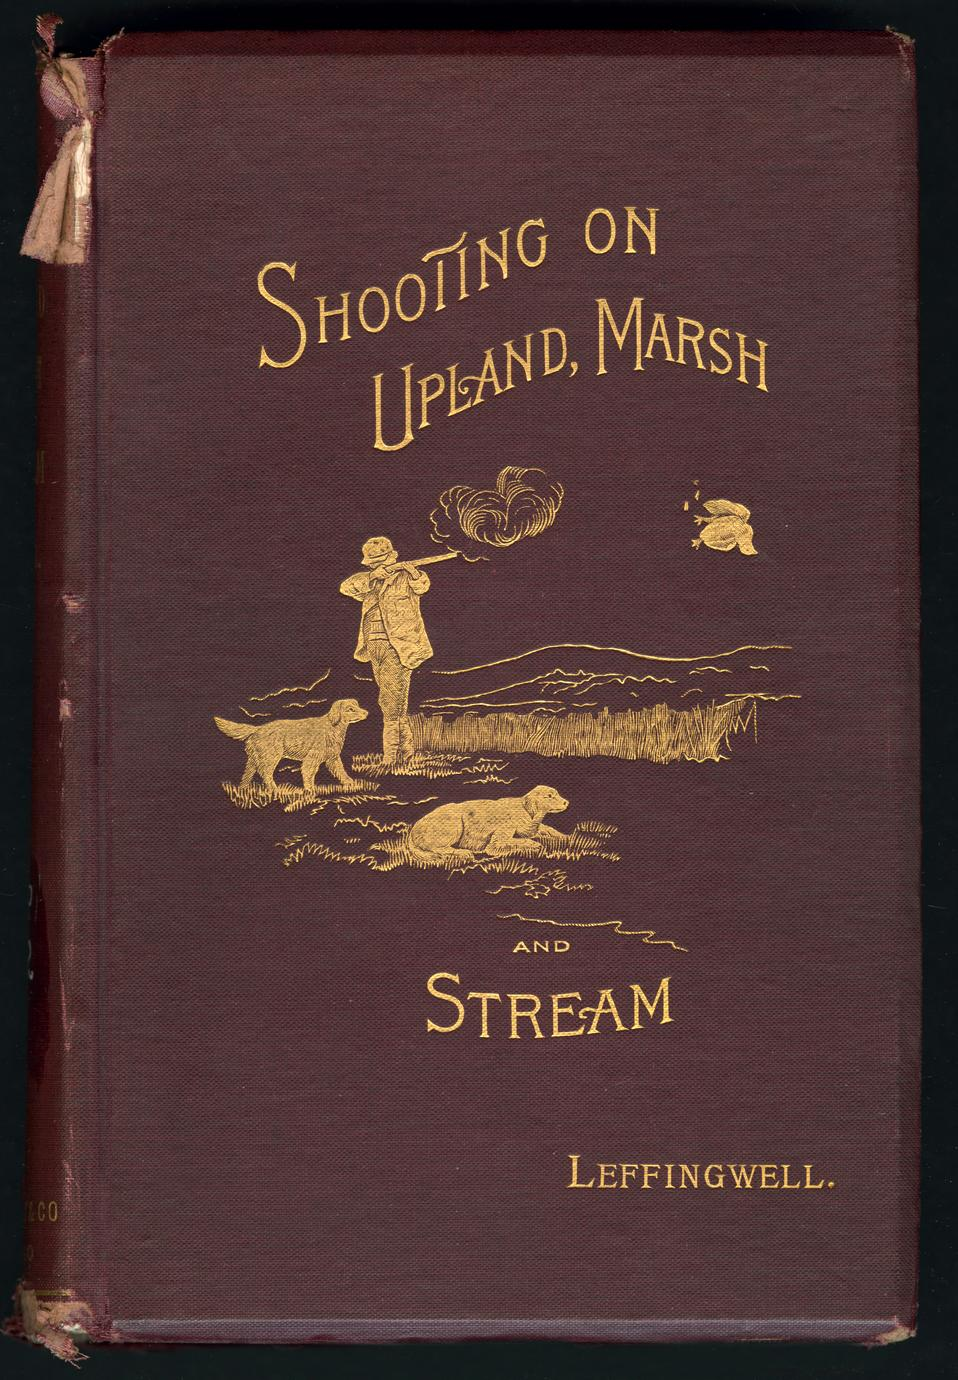 Shooting on upland, marsh, and stream (1 of 3)